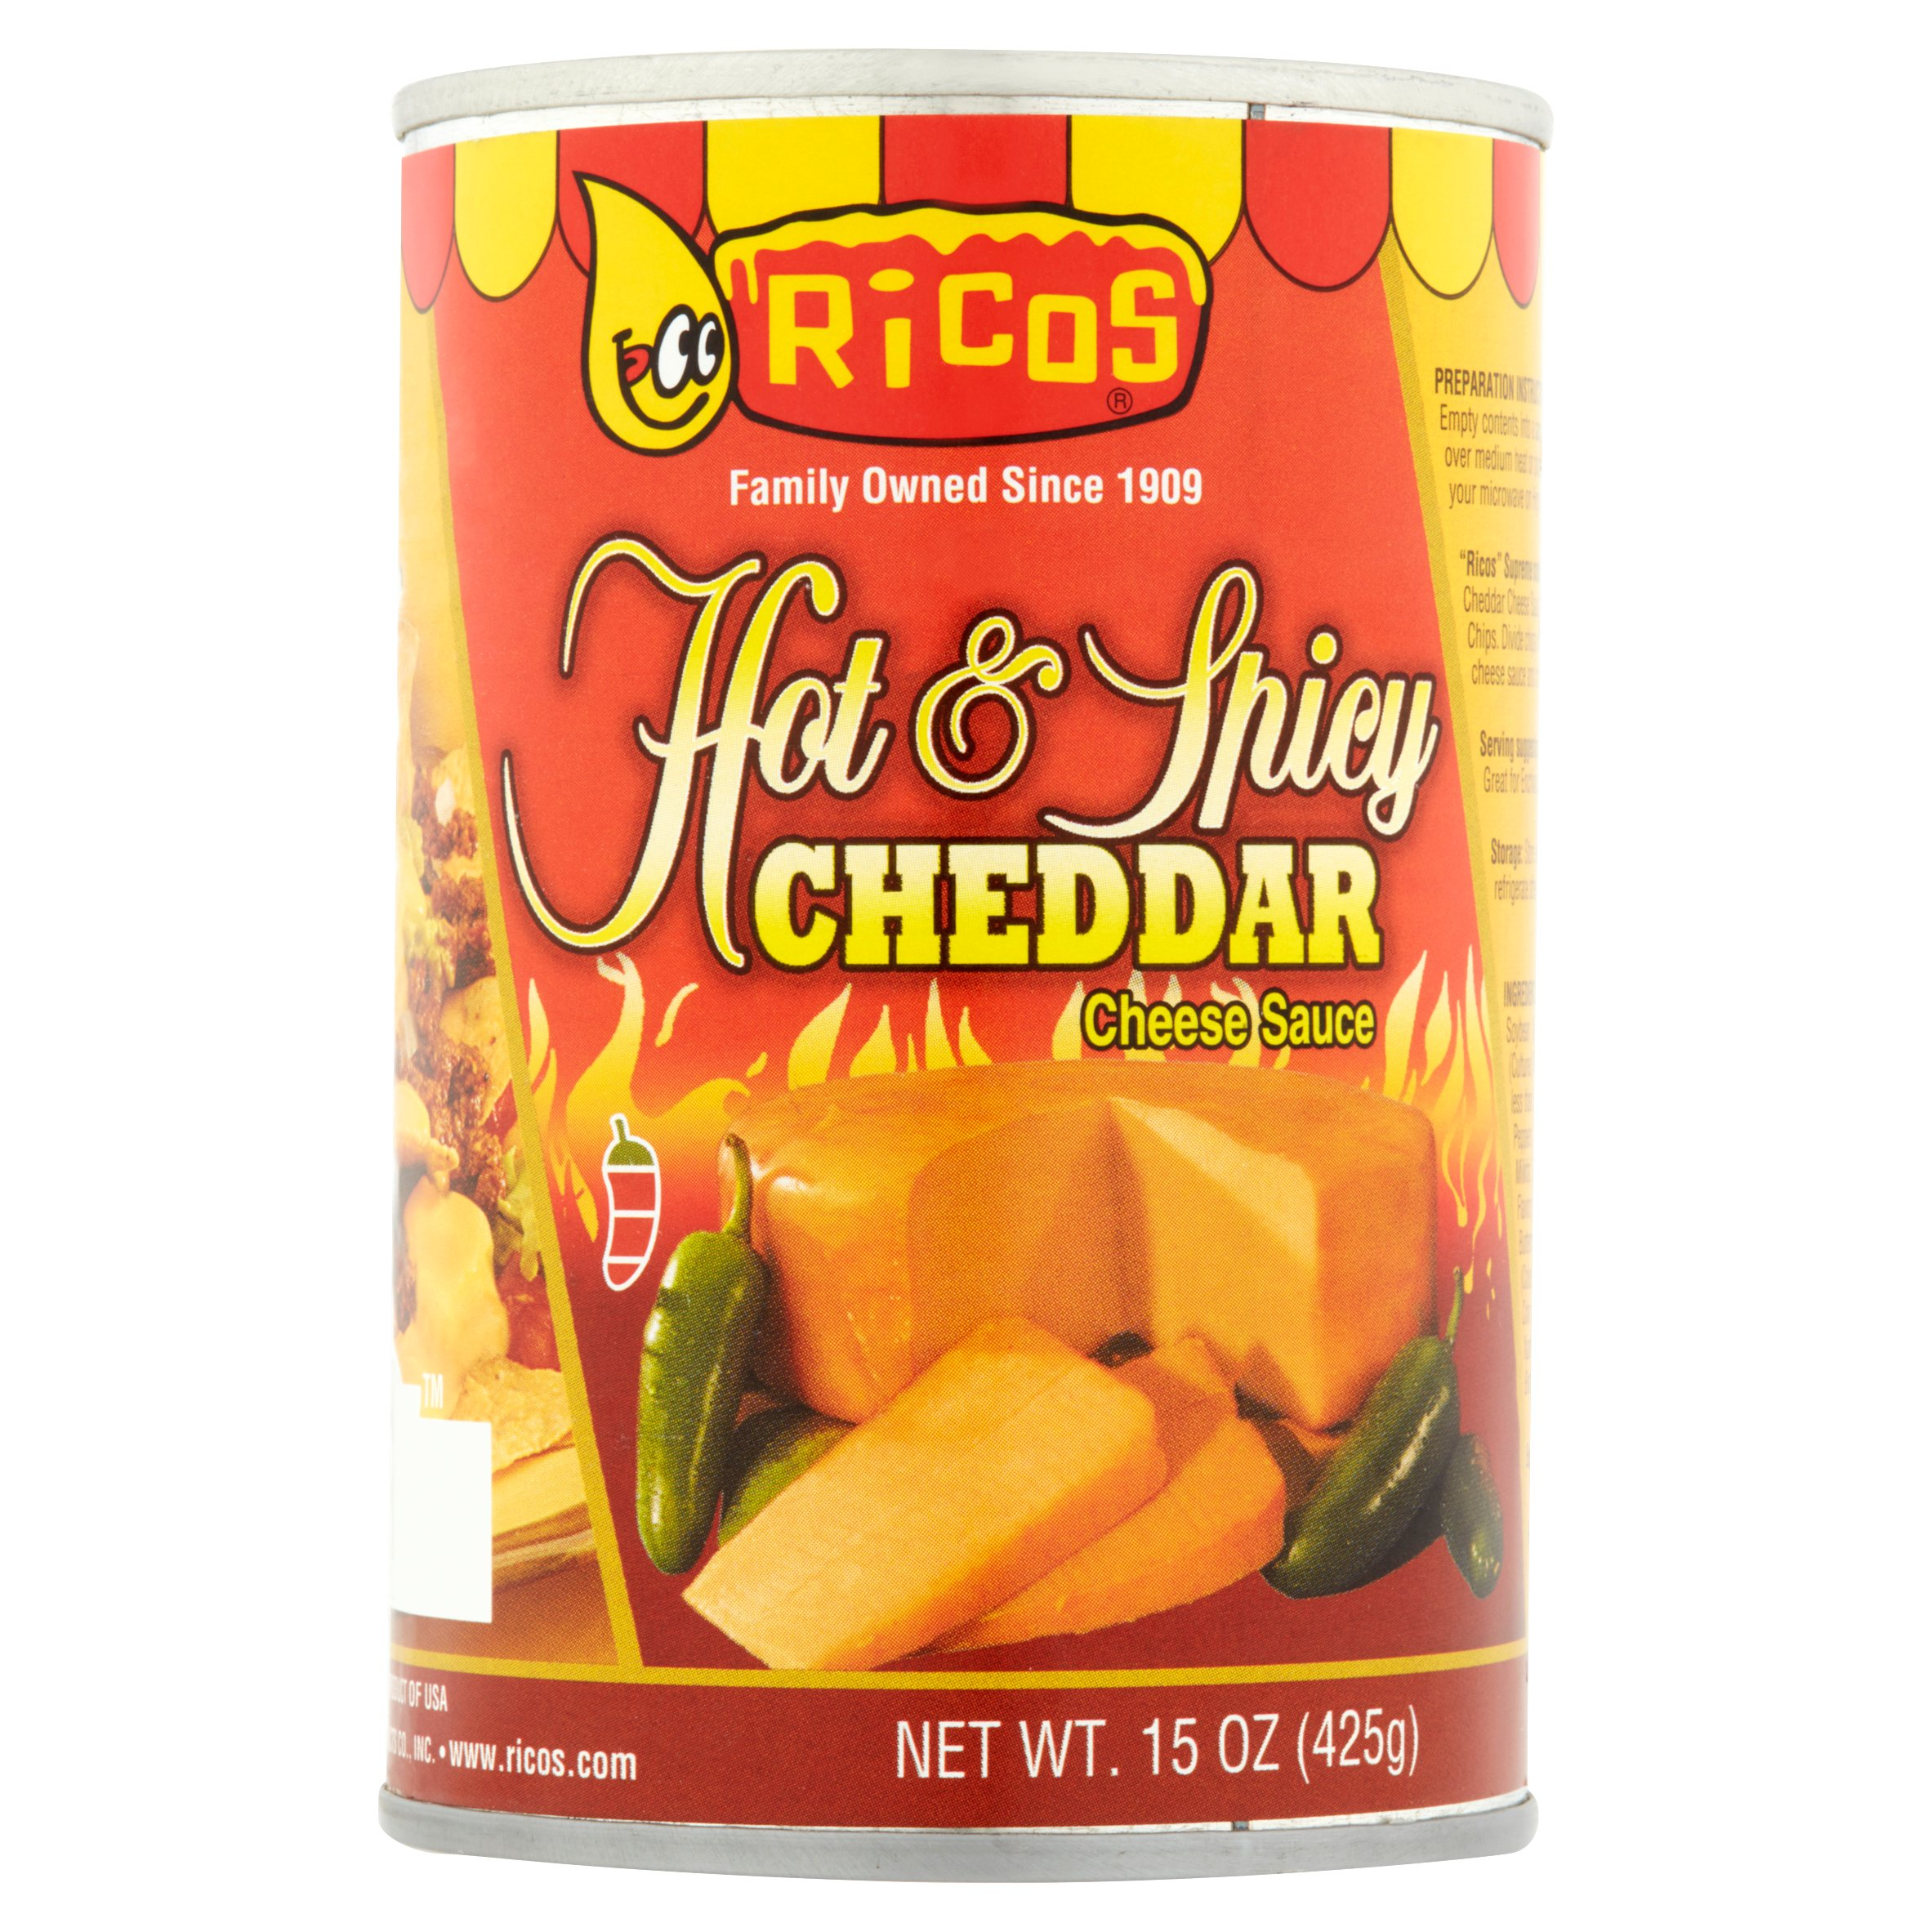 Ricos Hot & Spicy Cheddar Cheese Sauce, 15 oz by Ricos Products Co., Inc.